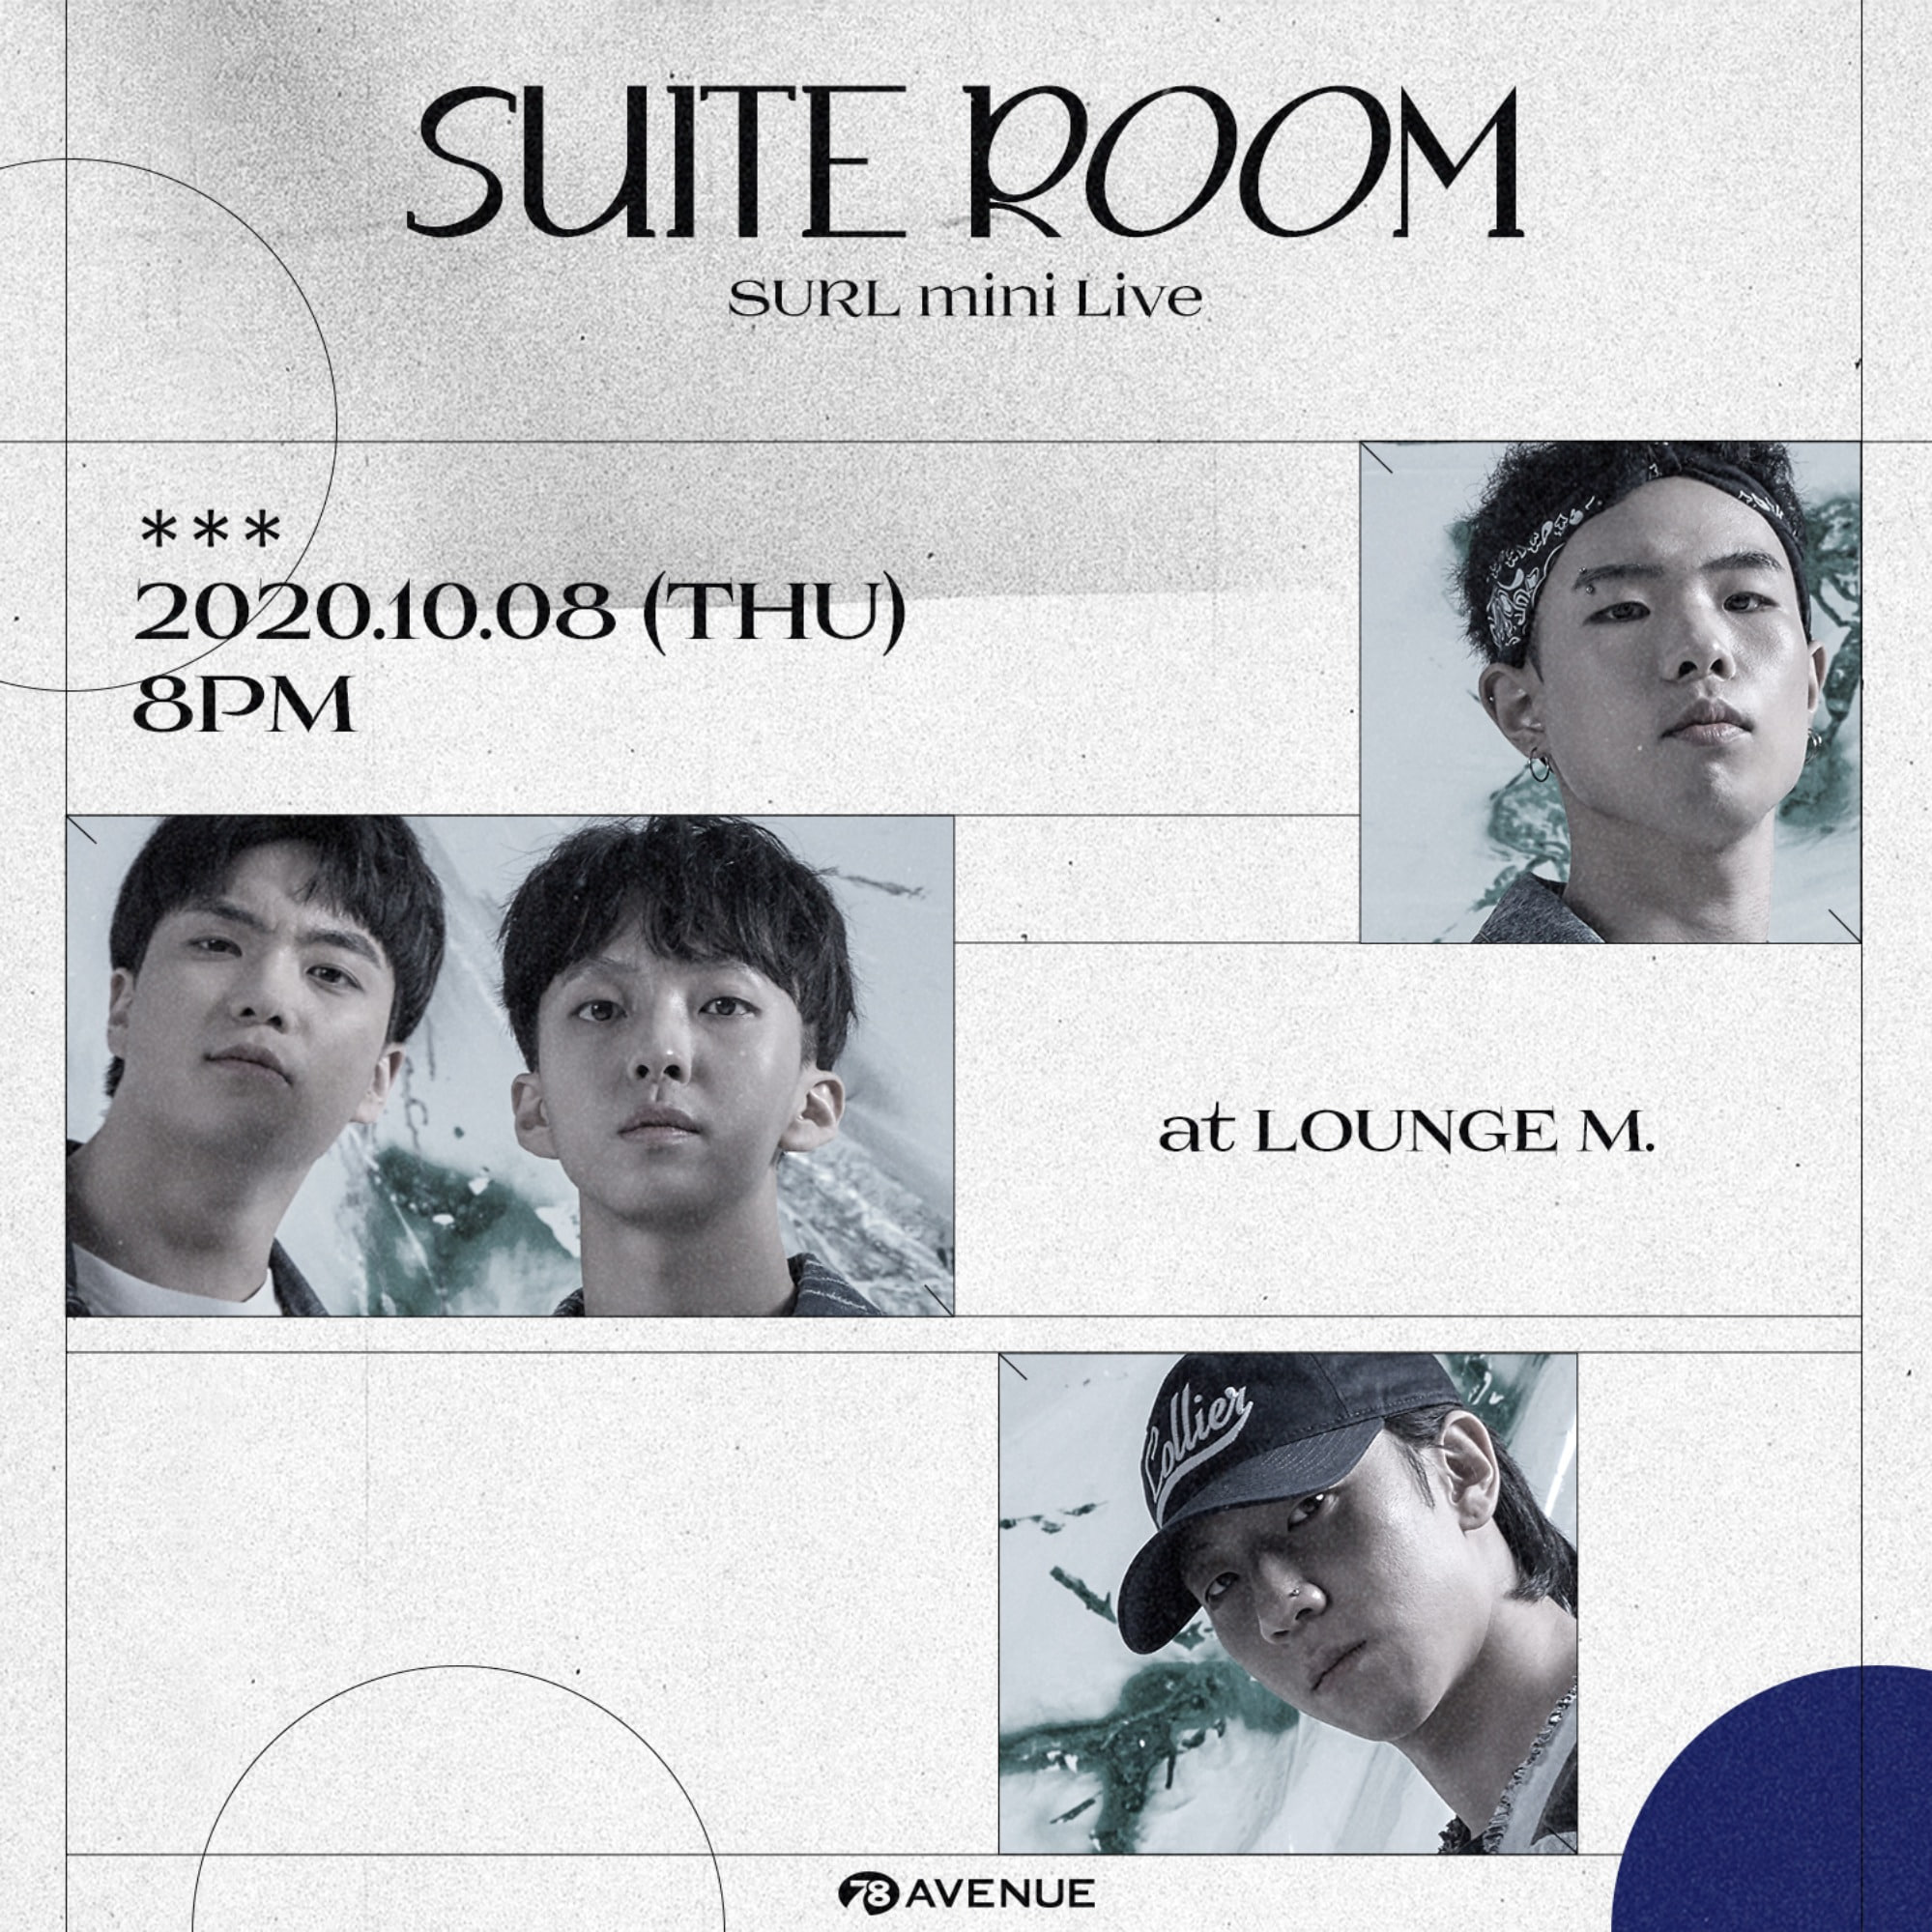 [2020.10.08] SURL mini Live 'Suite Room'